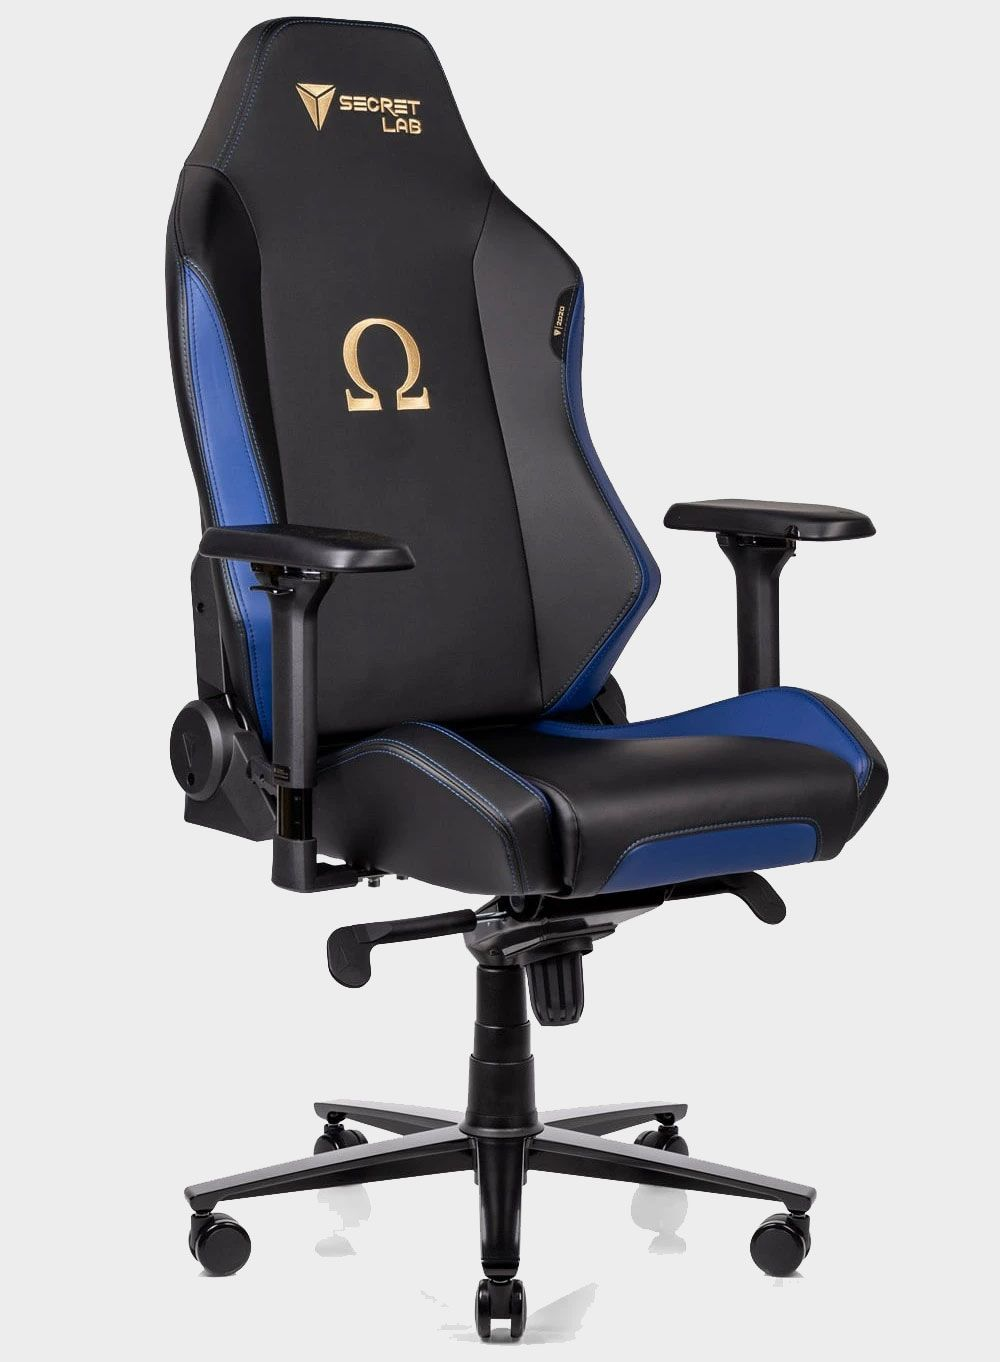 Superb Cyber Monday Gaming Chair Deals 2019 Pc Gamer Uwap Interior Chair Design Uwaporg